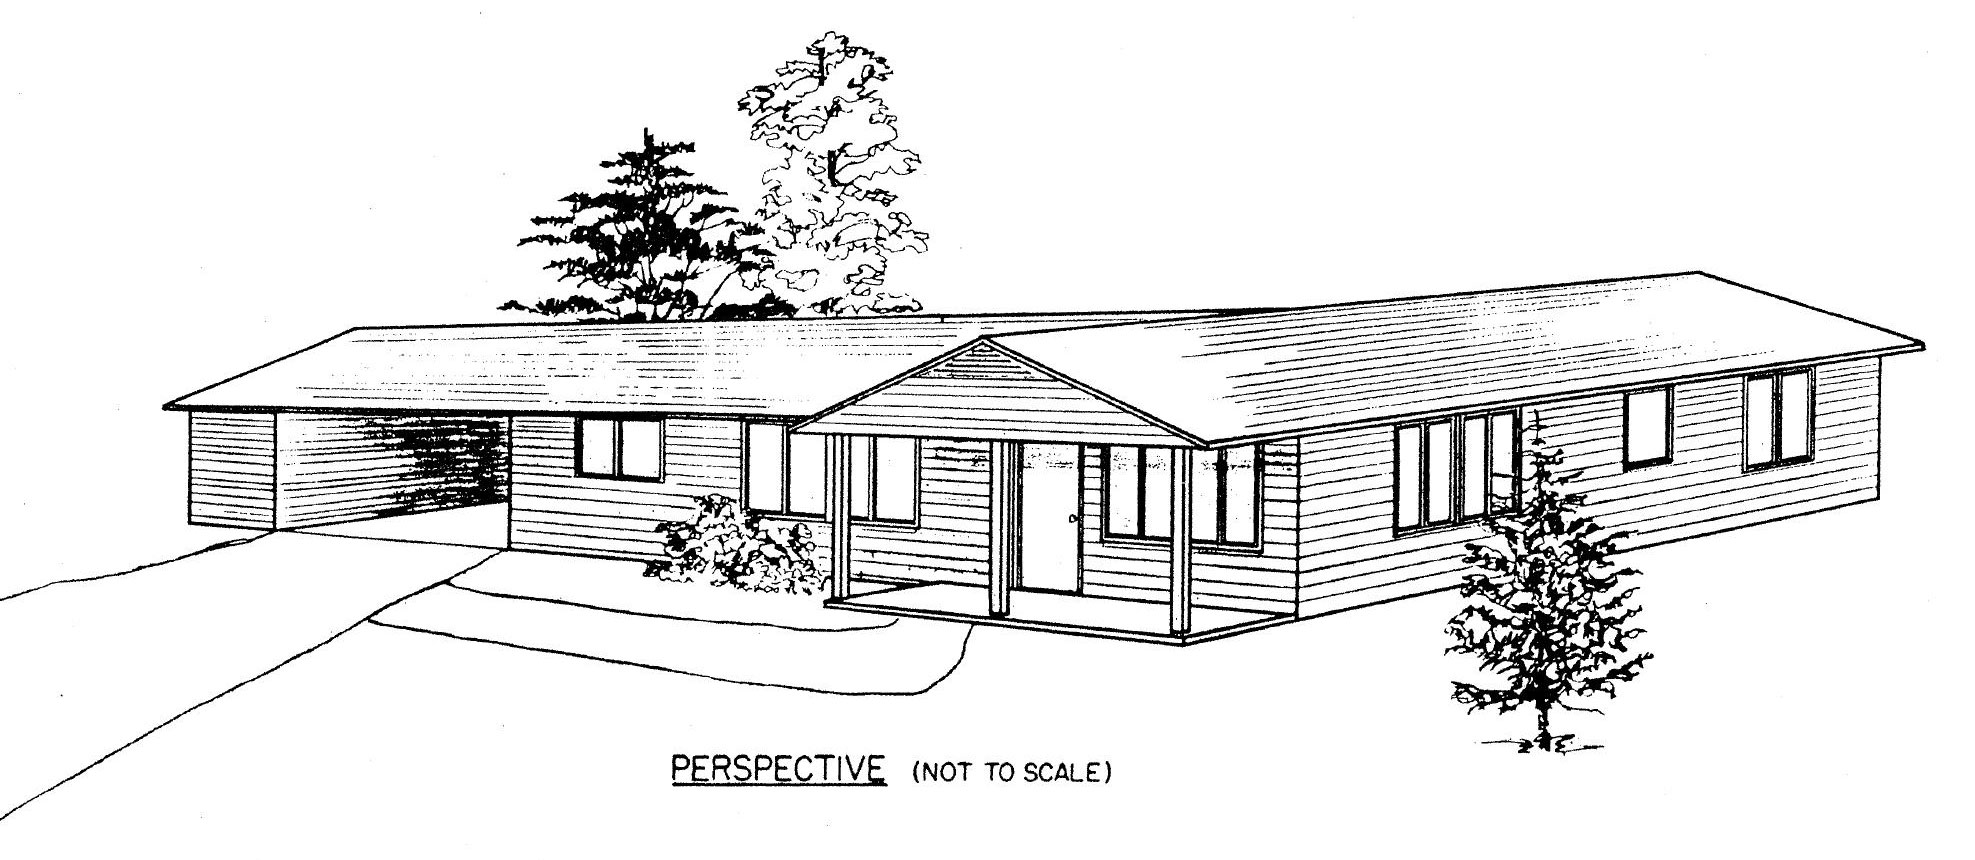 Ranch style house clipart images for Free ranch house plans